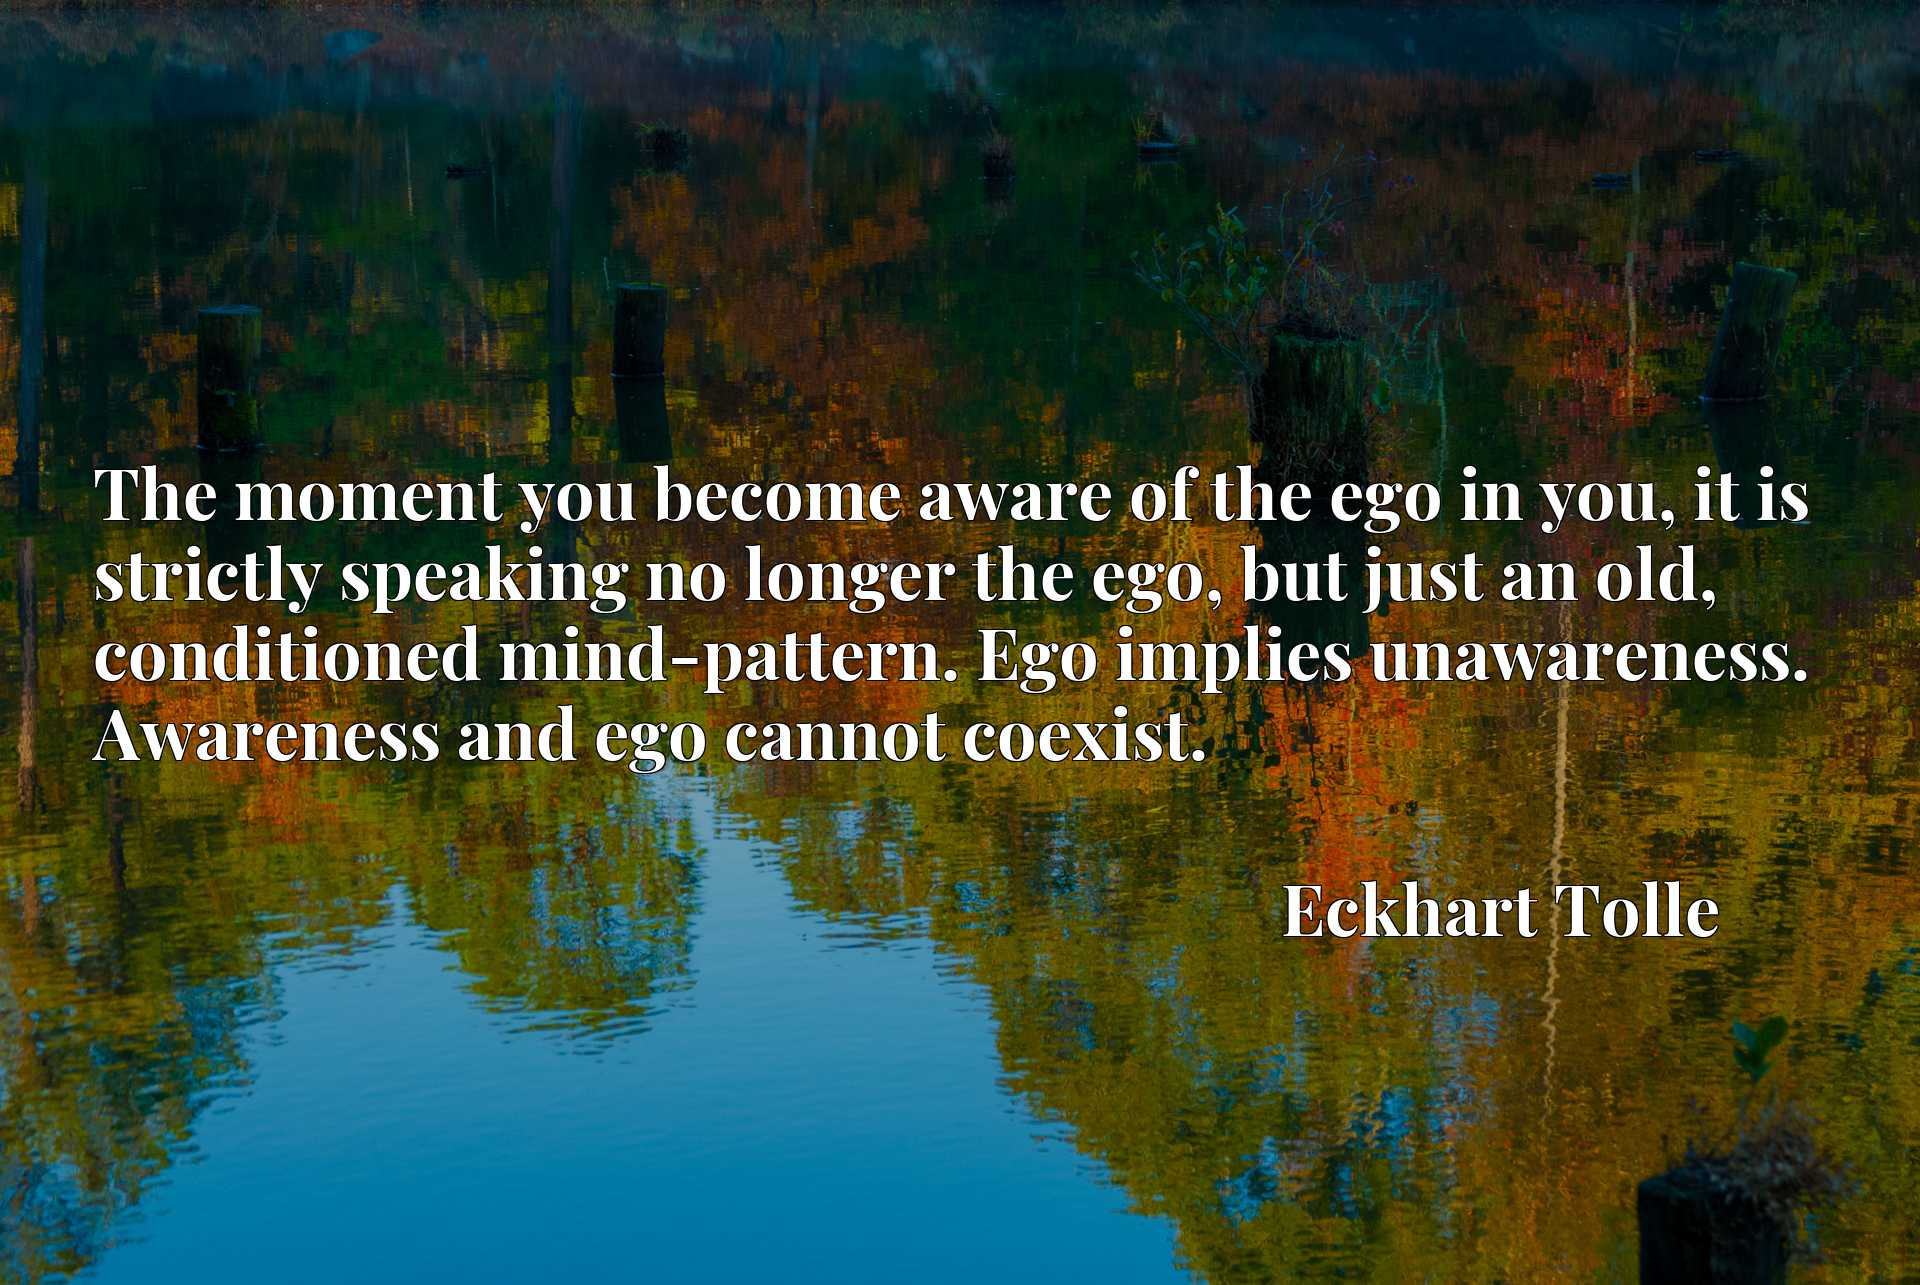 The moment you become aware of the ego in you, it is strictly speaking no longer the ego, but just an old, conditioned mind-pattern. Ego implies unawareness. Awareness and ego cannot coexist.